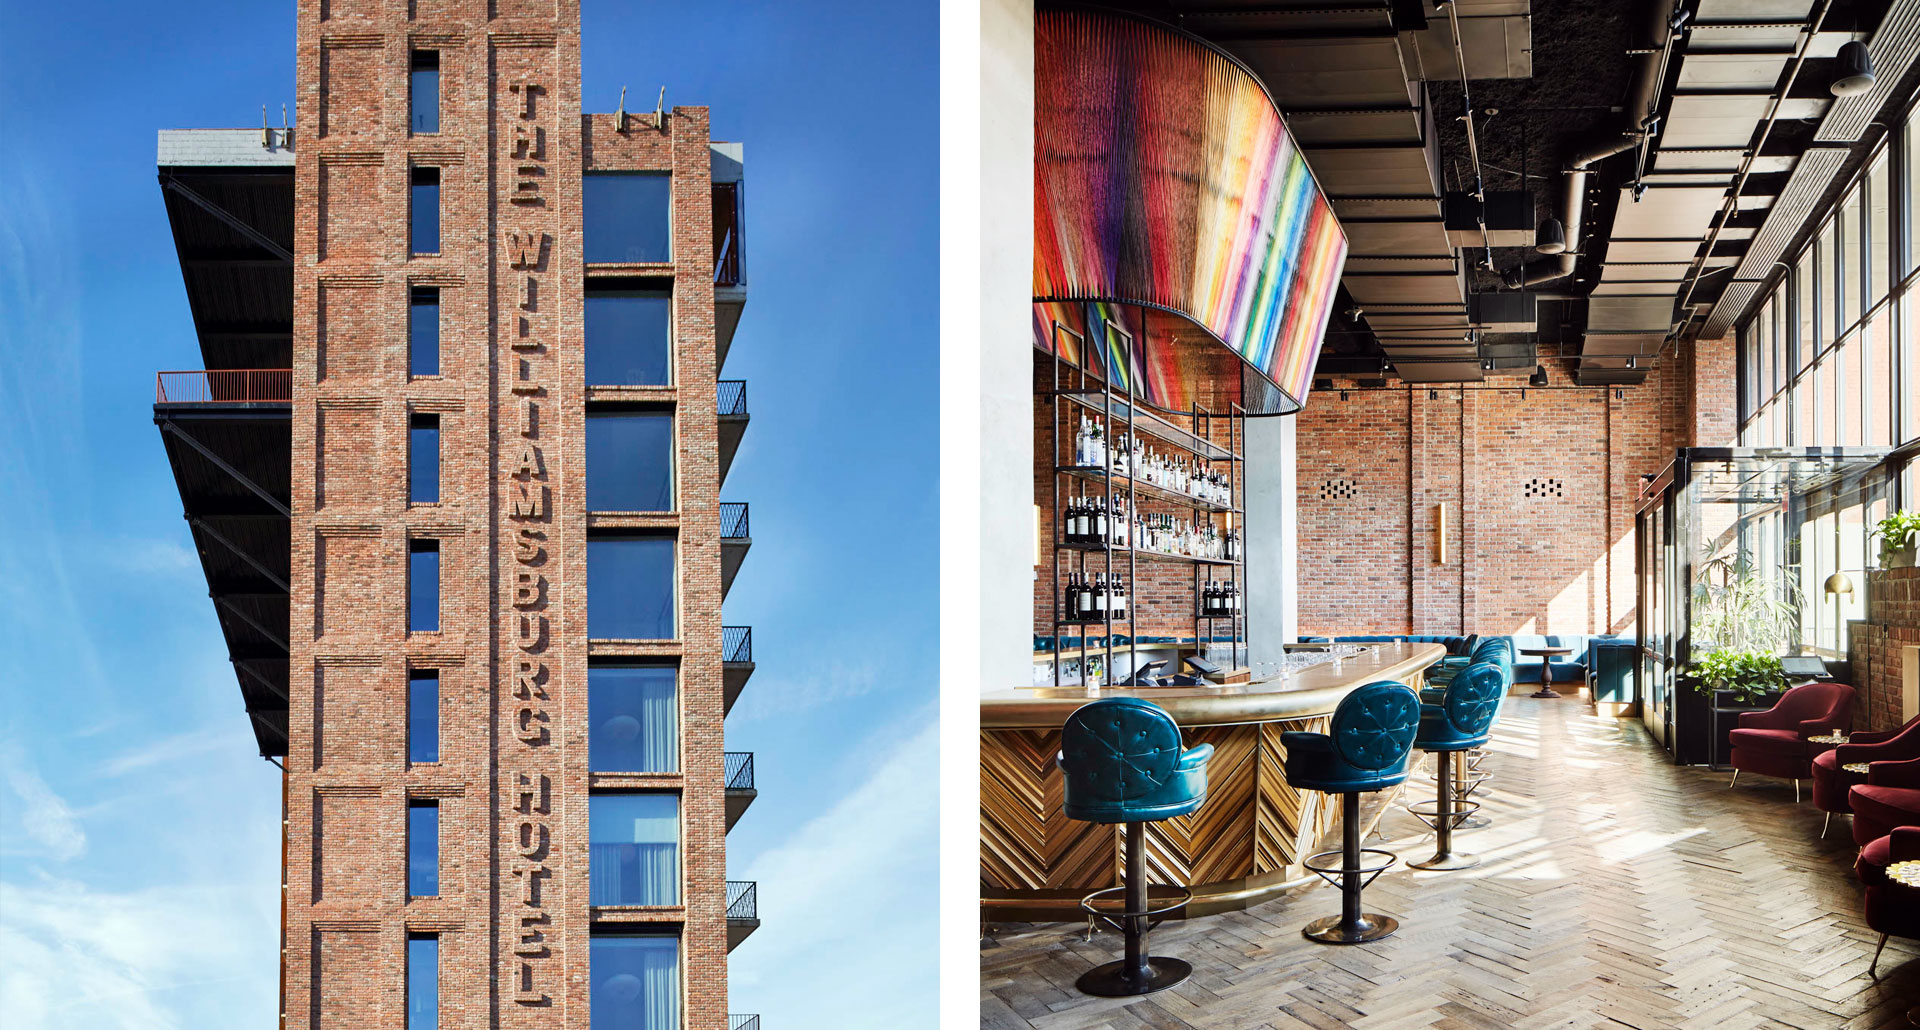 The Williamsburg Hotel - boutique hotel in Brooklyn